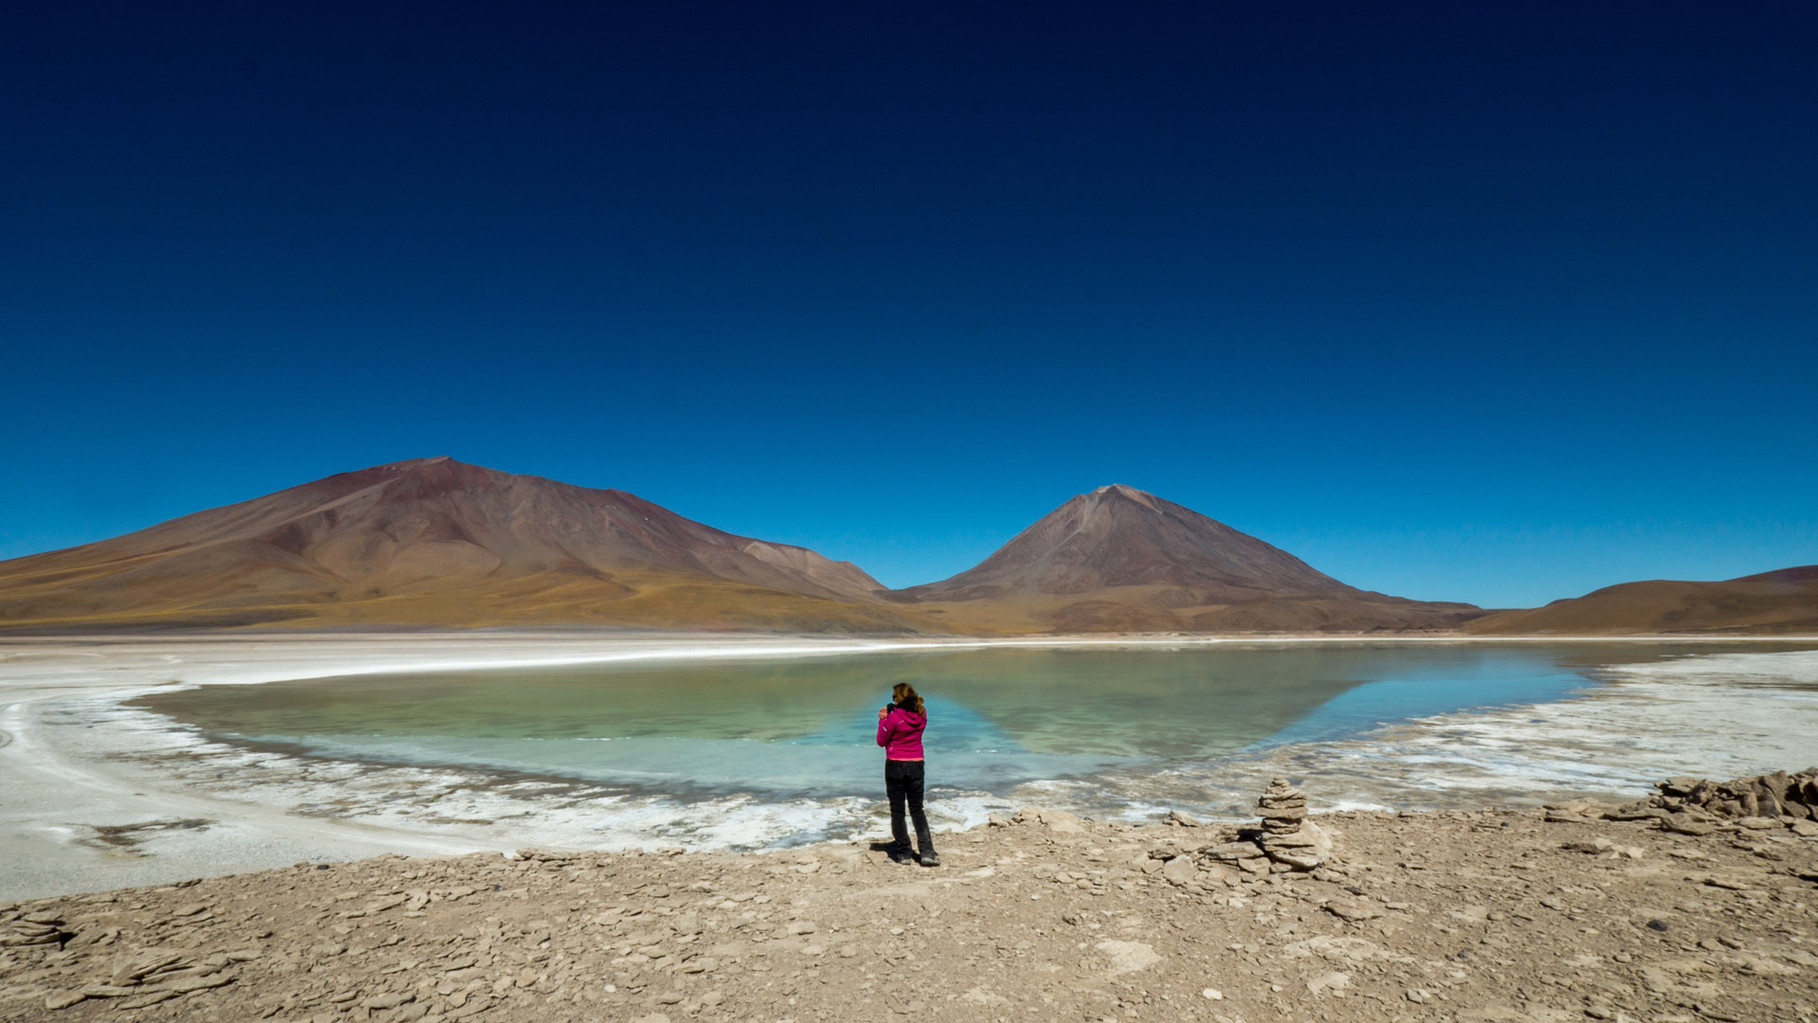 Laguna Verde (Green lagoon), Volcano Licancabur in the background [Bolivia, 2014]